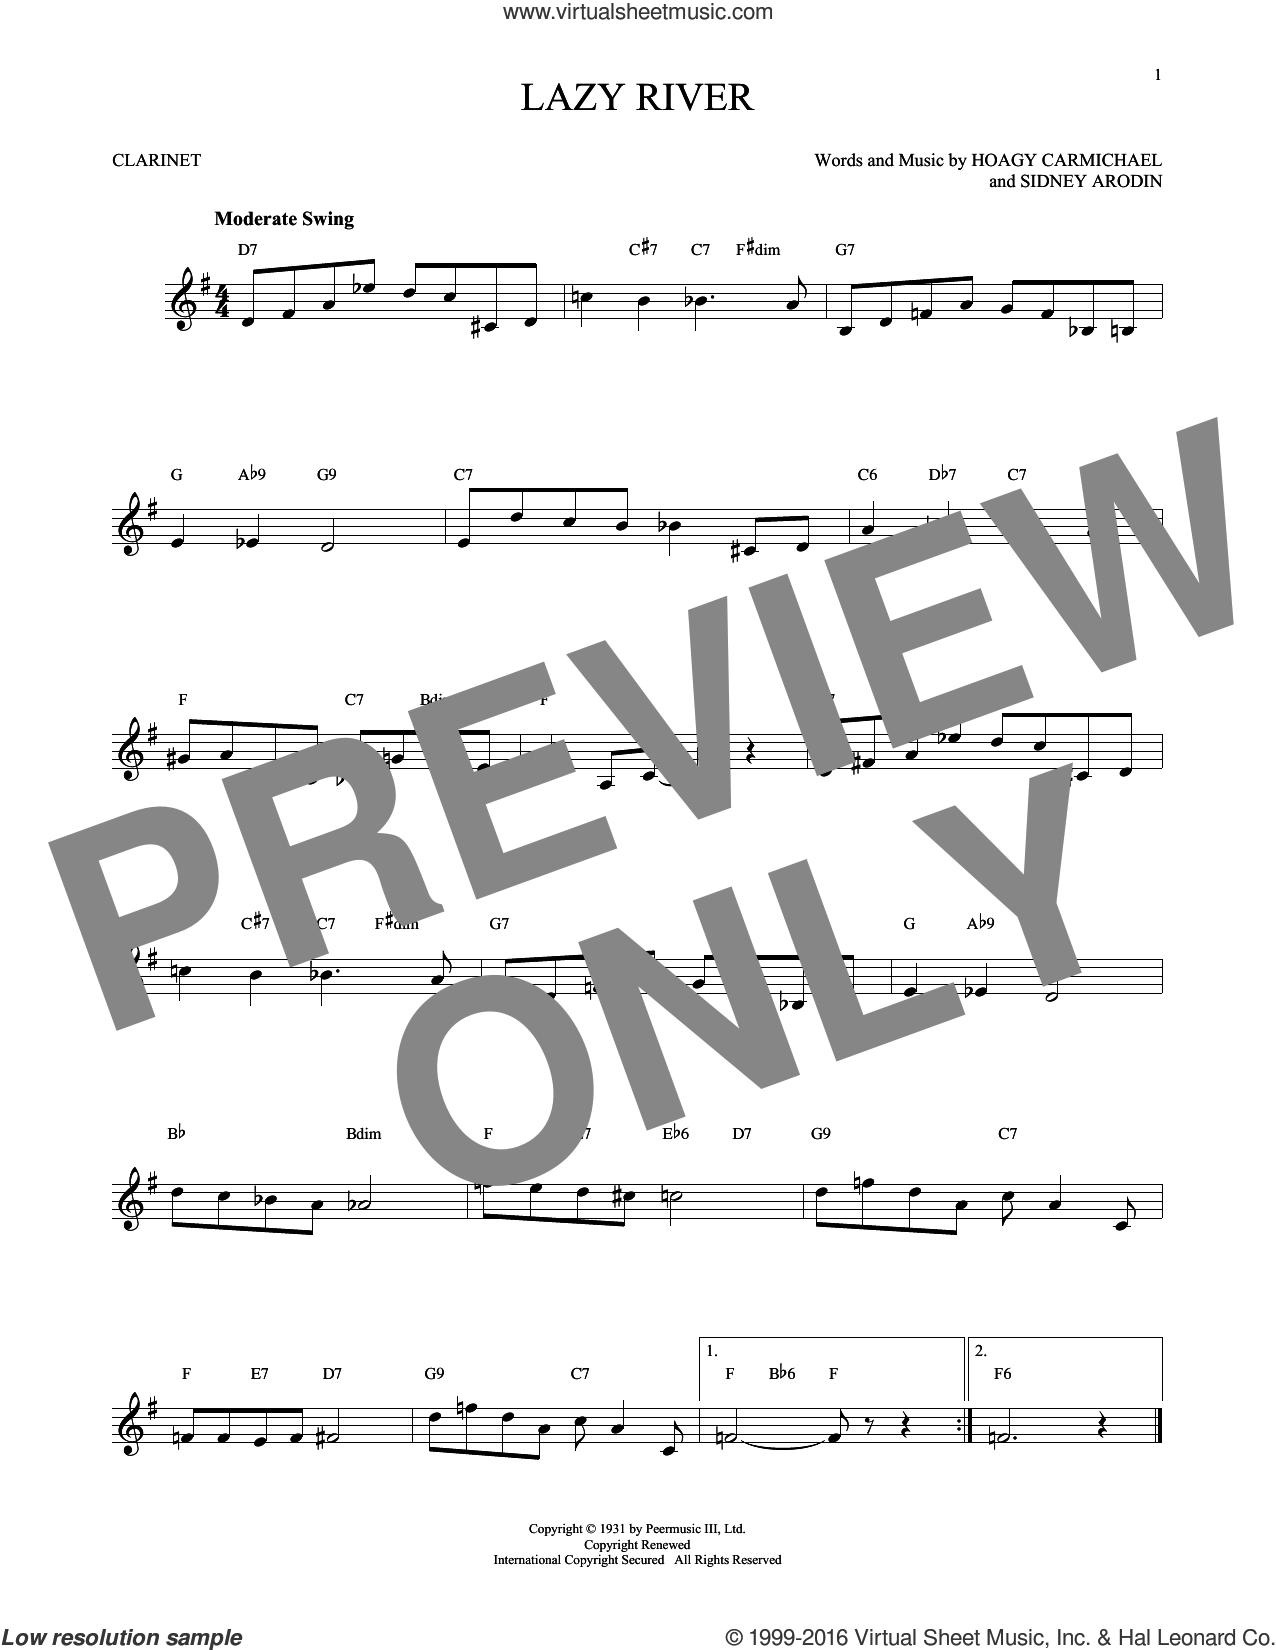 Lazy River sheet music for clarinet solo by Hoagy Carmichael, Bobby Darin and Sidney Arodin, intermediate skill level